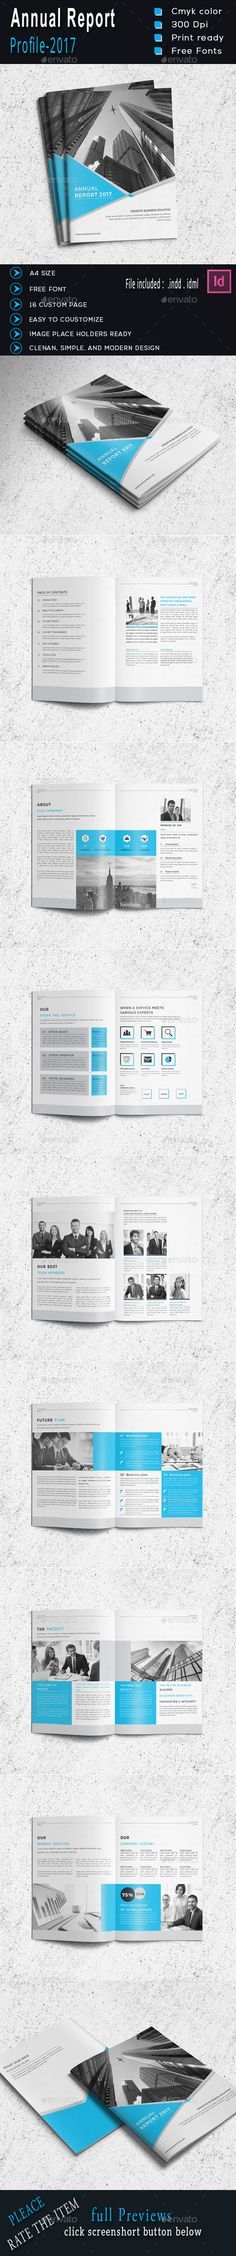 A5 Landscape Corporate Annual Report Http  www - business annual report template